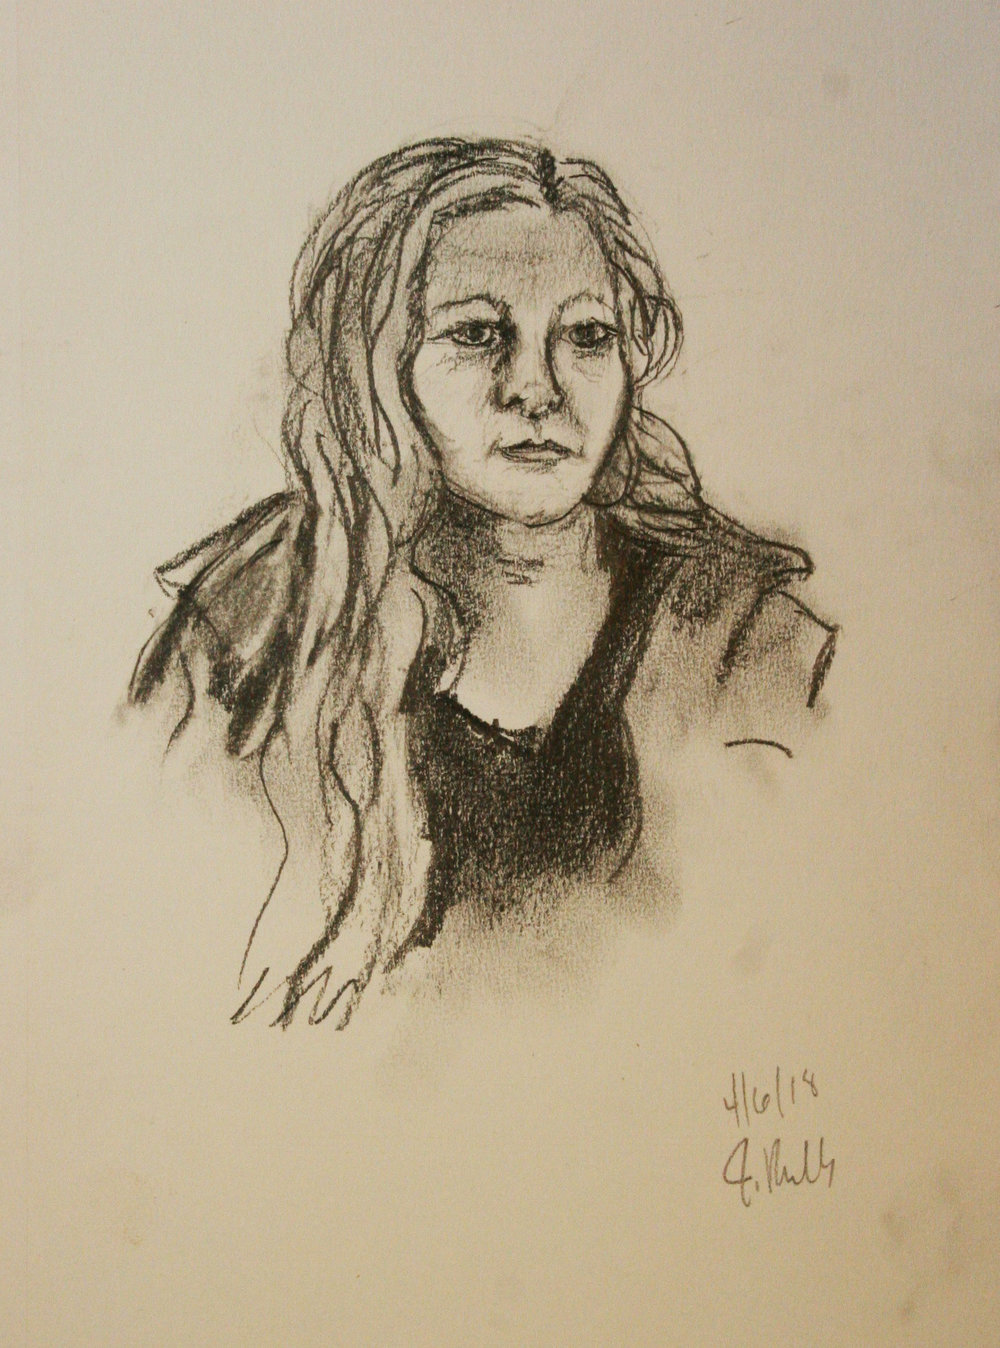 Jean Reilly did this drawing.